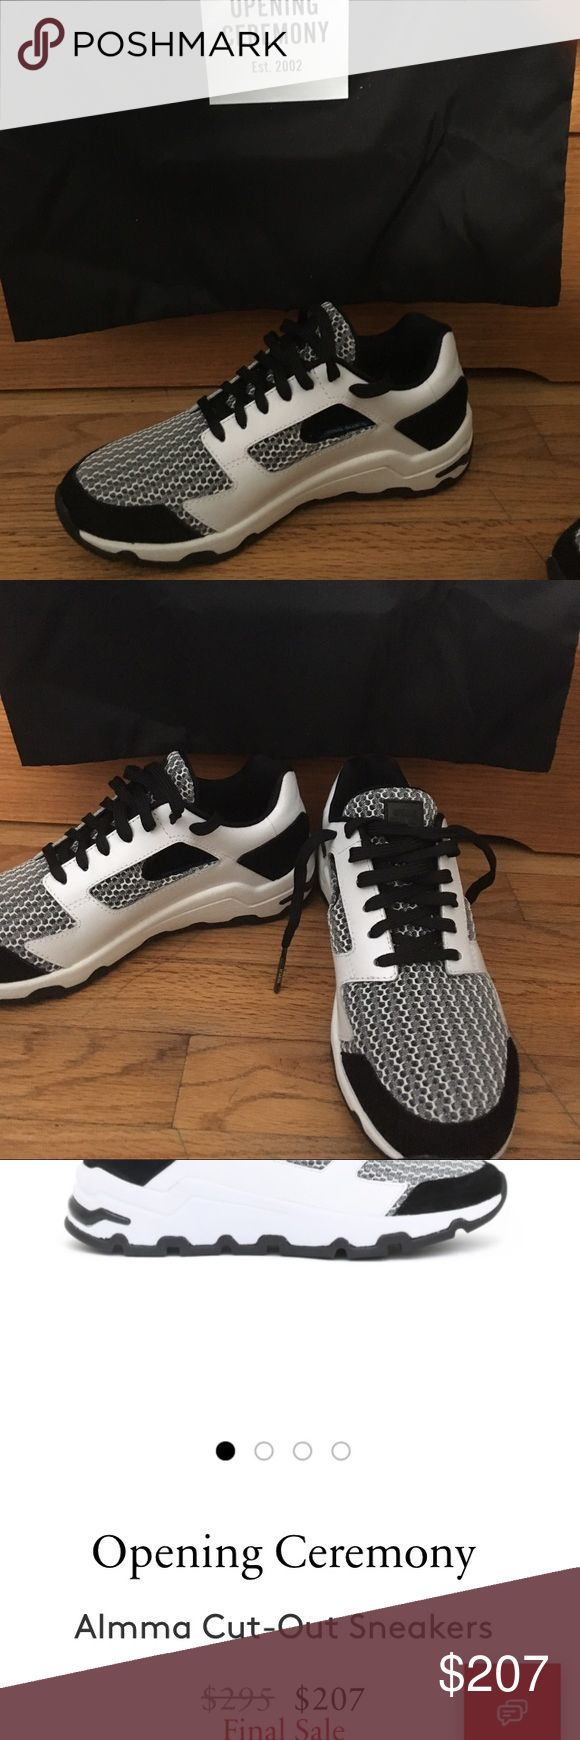 Opening Ceremony Sneakers Received as a gift but I'd rather sell than have expensive sneakers. Opening Ceremony Shoes Athletic Shoes